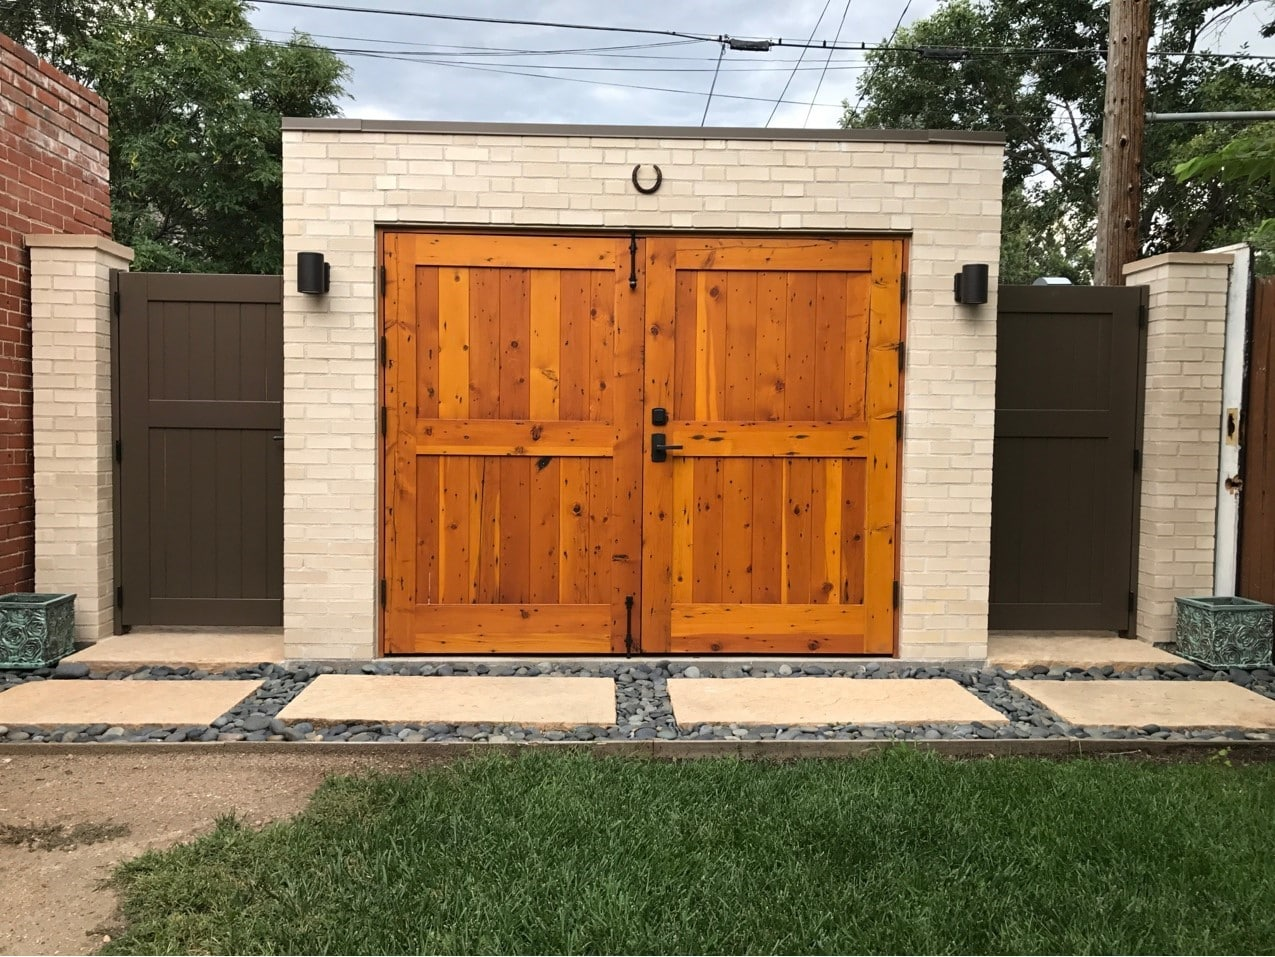 128. CL15N design – full panel tongue and groove in Reclaimed Douglas Fir; Denver, CO